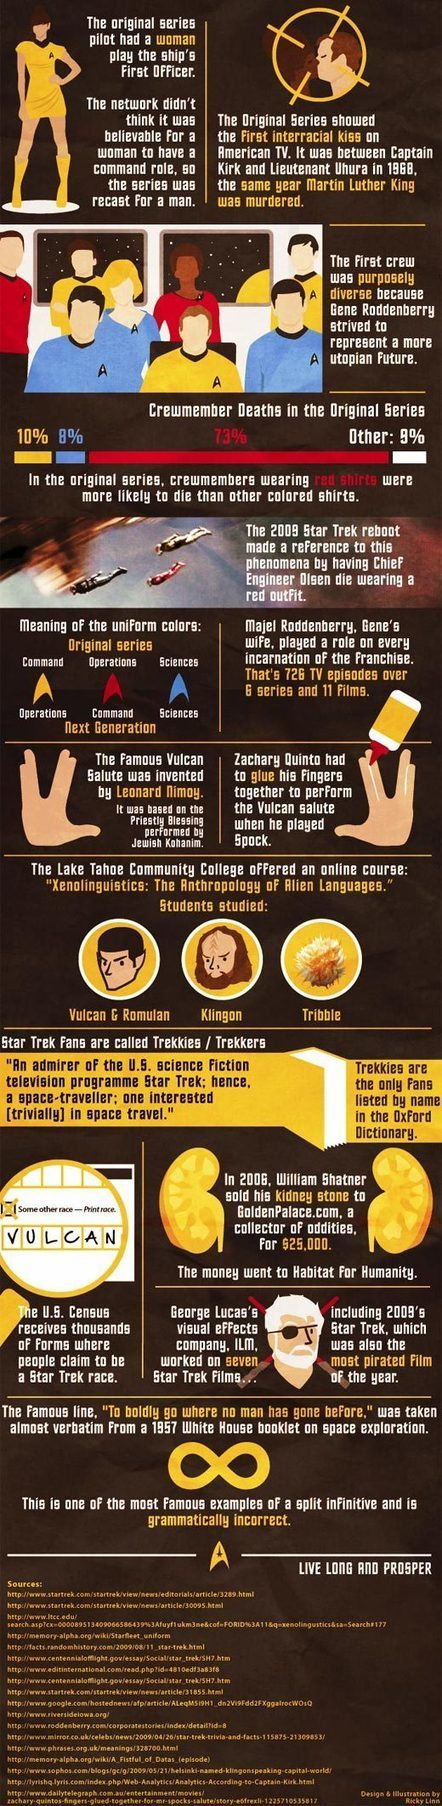 15 Things You Probably Didn't Know About Star Trek | VIM | Scoop.it